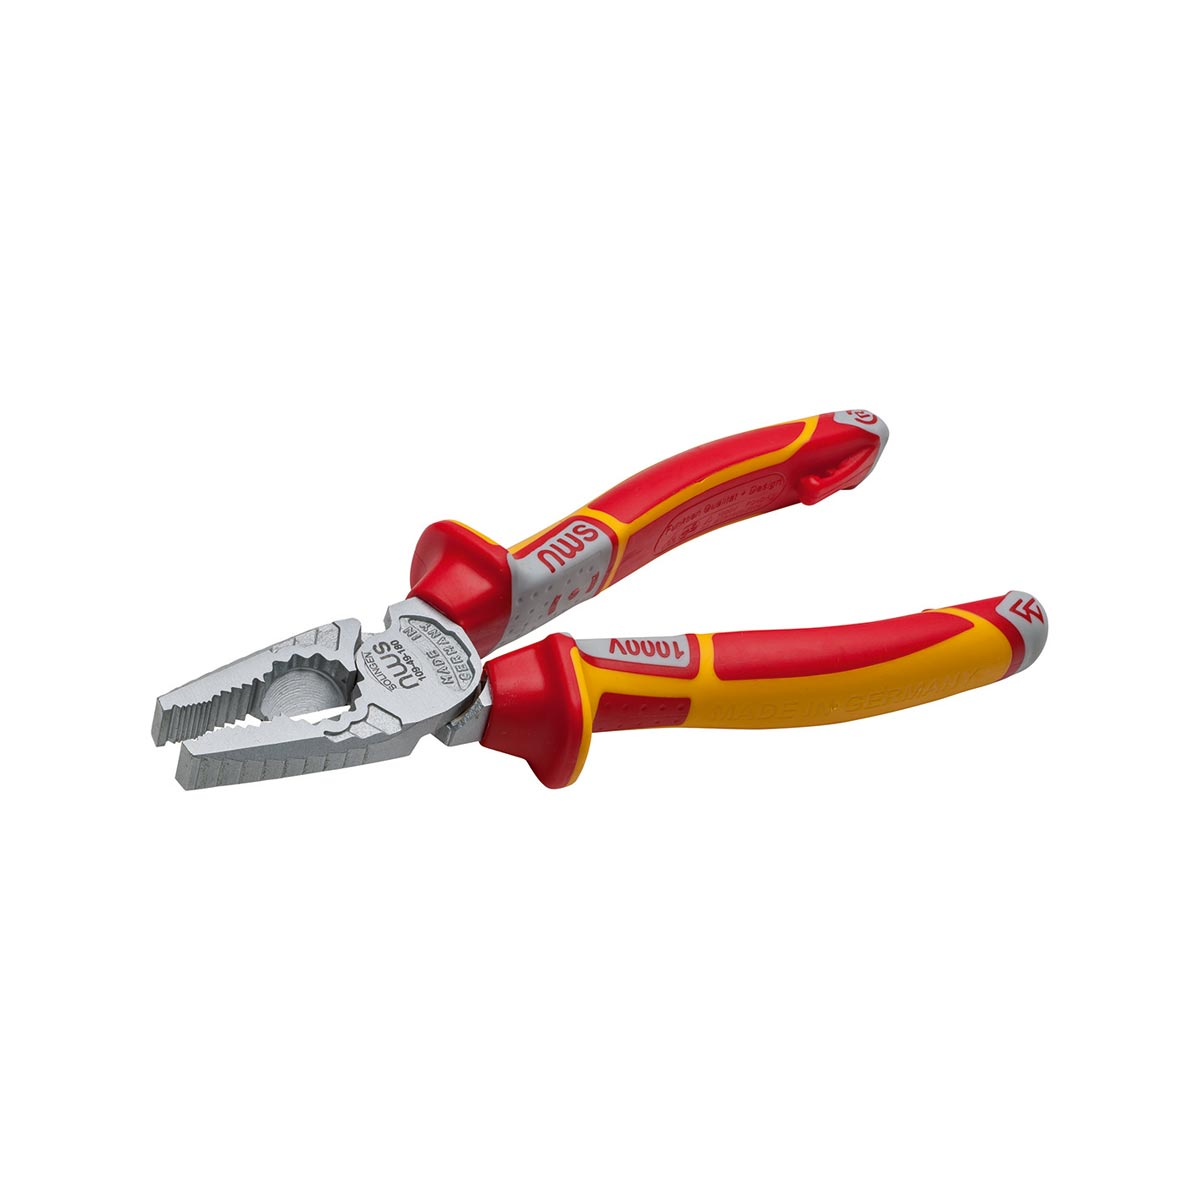 NWS High leverage combination pliers CombiMax VDE, 165 - 205 mm